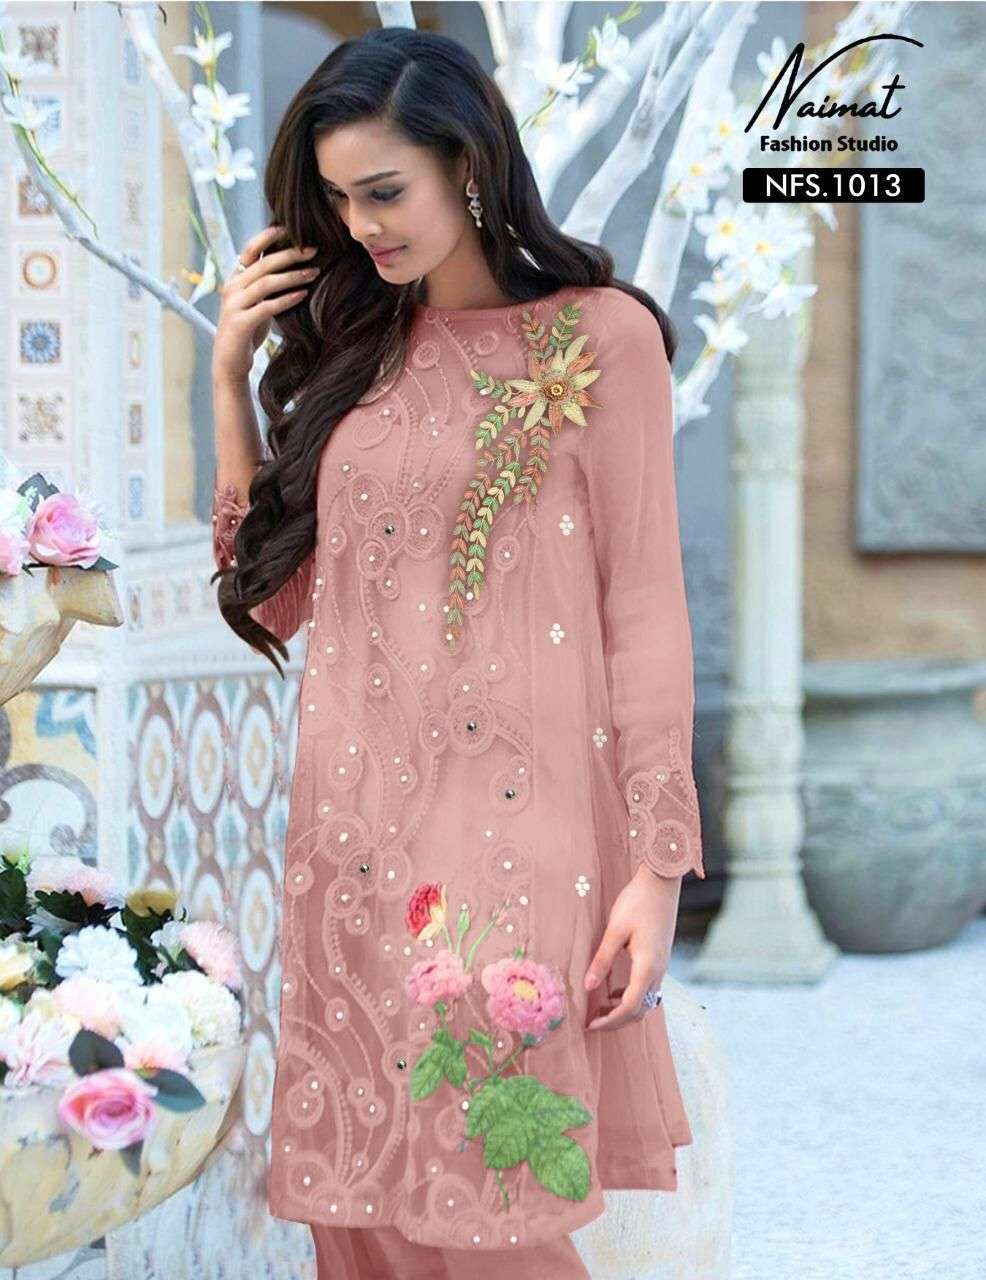 naimat fashion studio nfs-1013 Pure Georgette Tunic Kurti with Glamours Embroidery Work